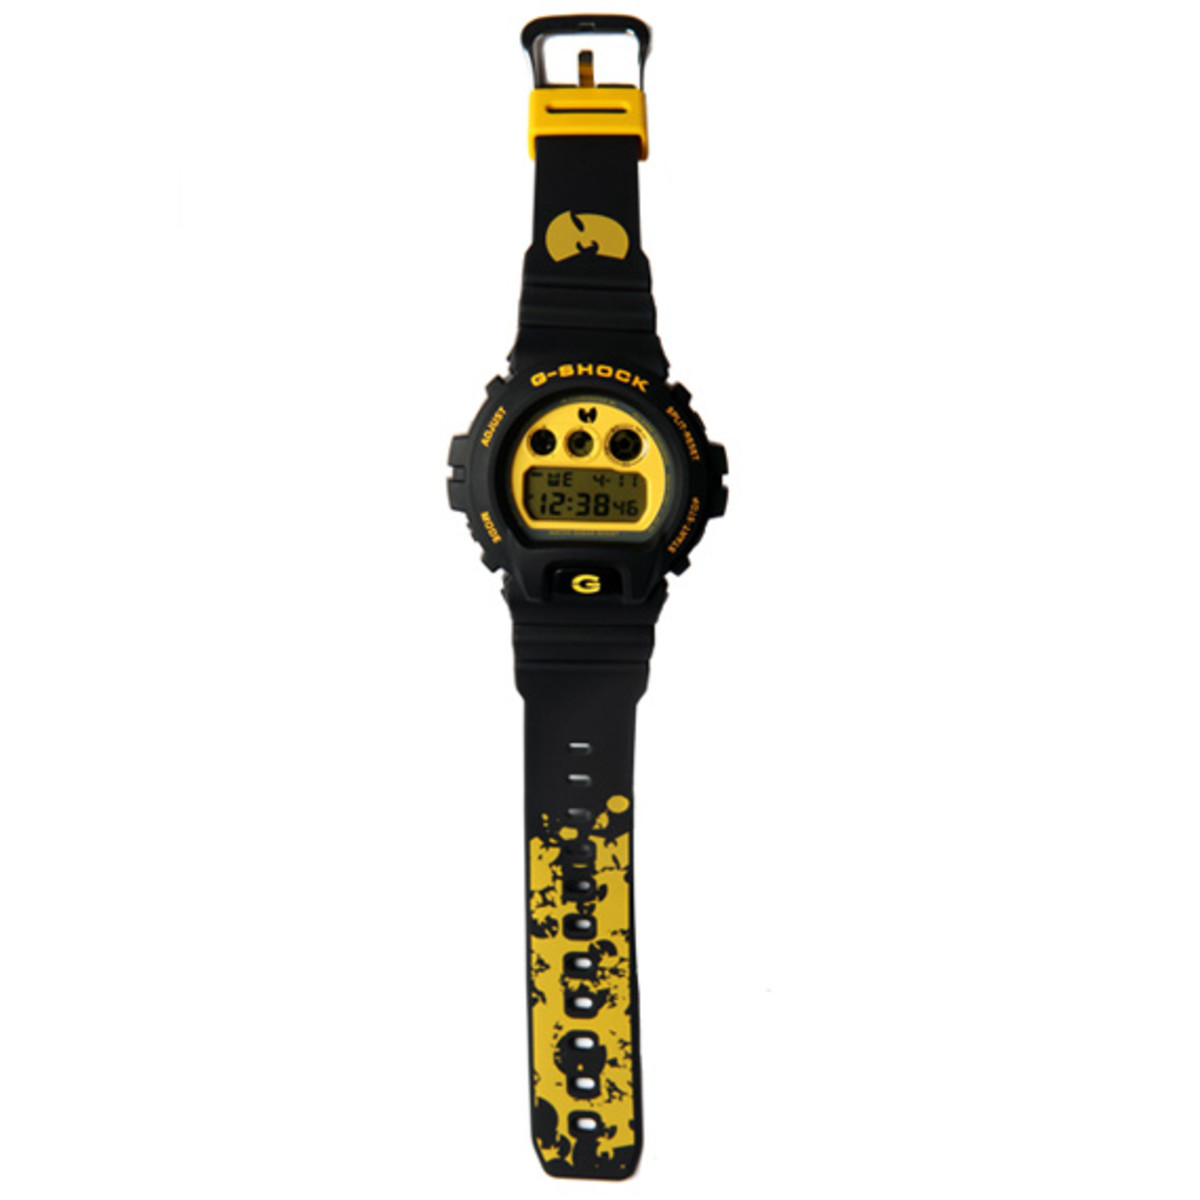 wu-tang-clan-casio-g-shock-dw-6900fswtc-1gjcu-watch-02